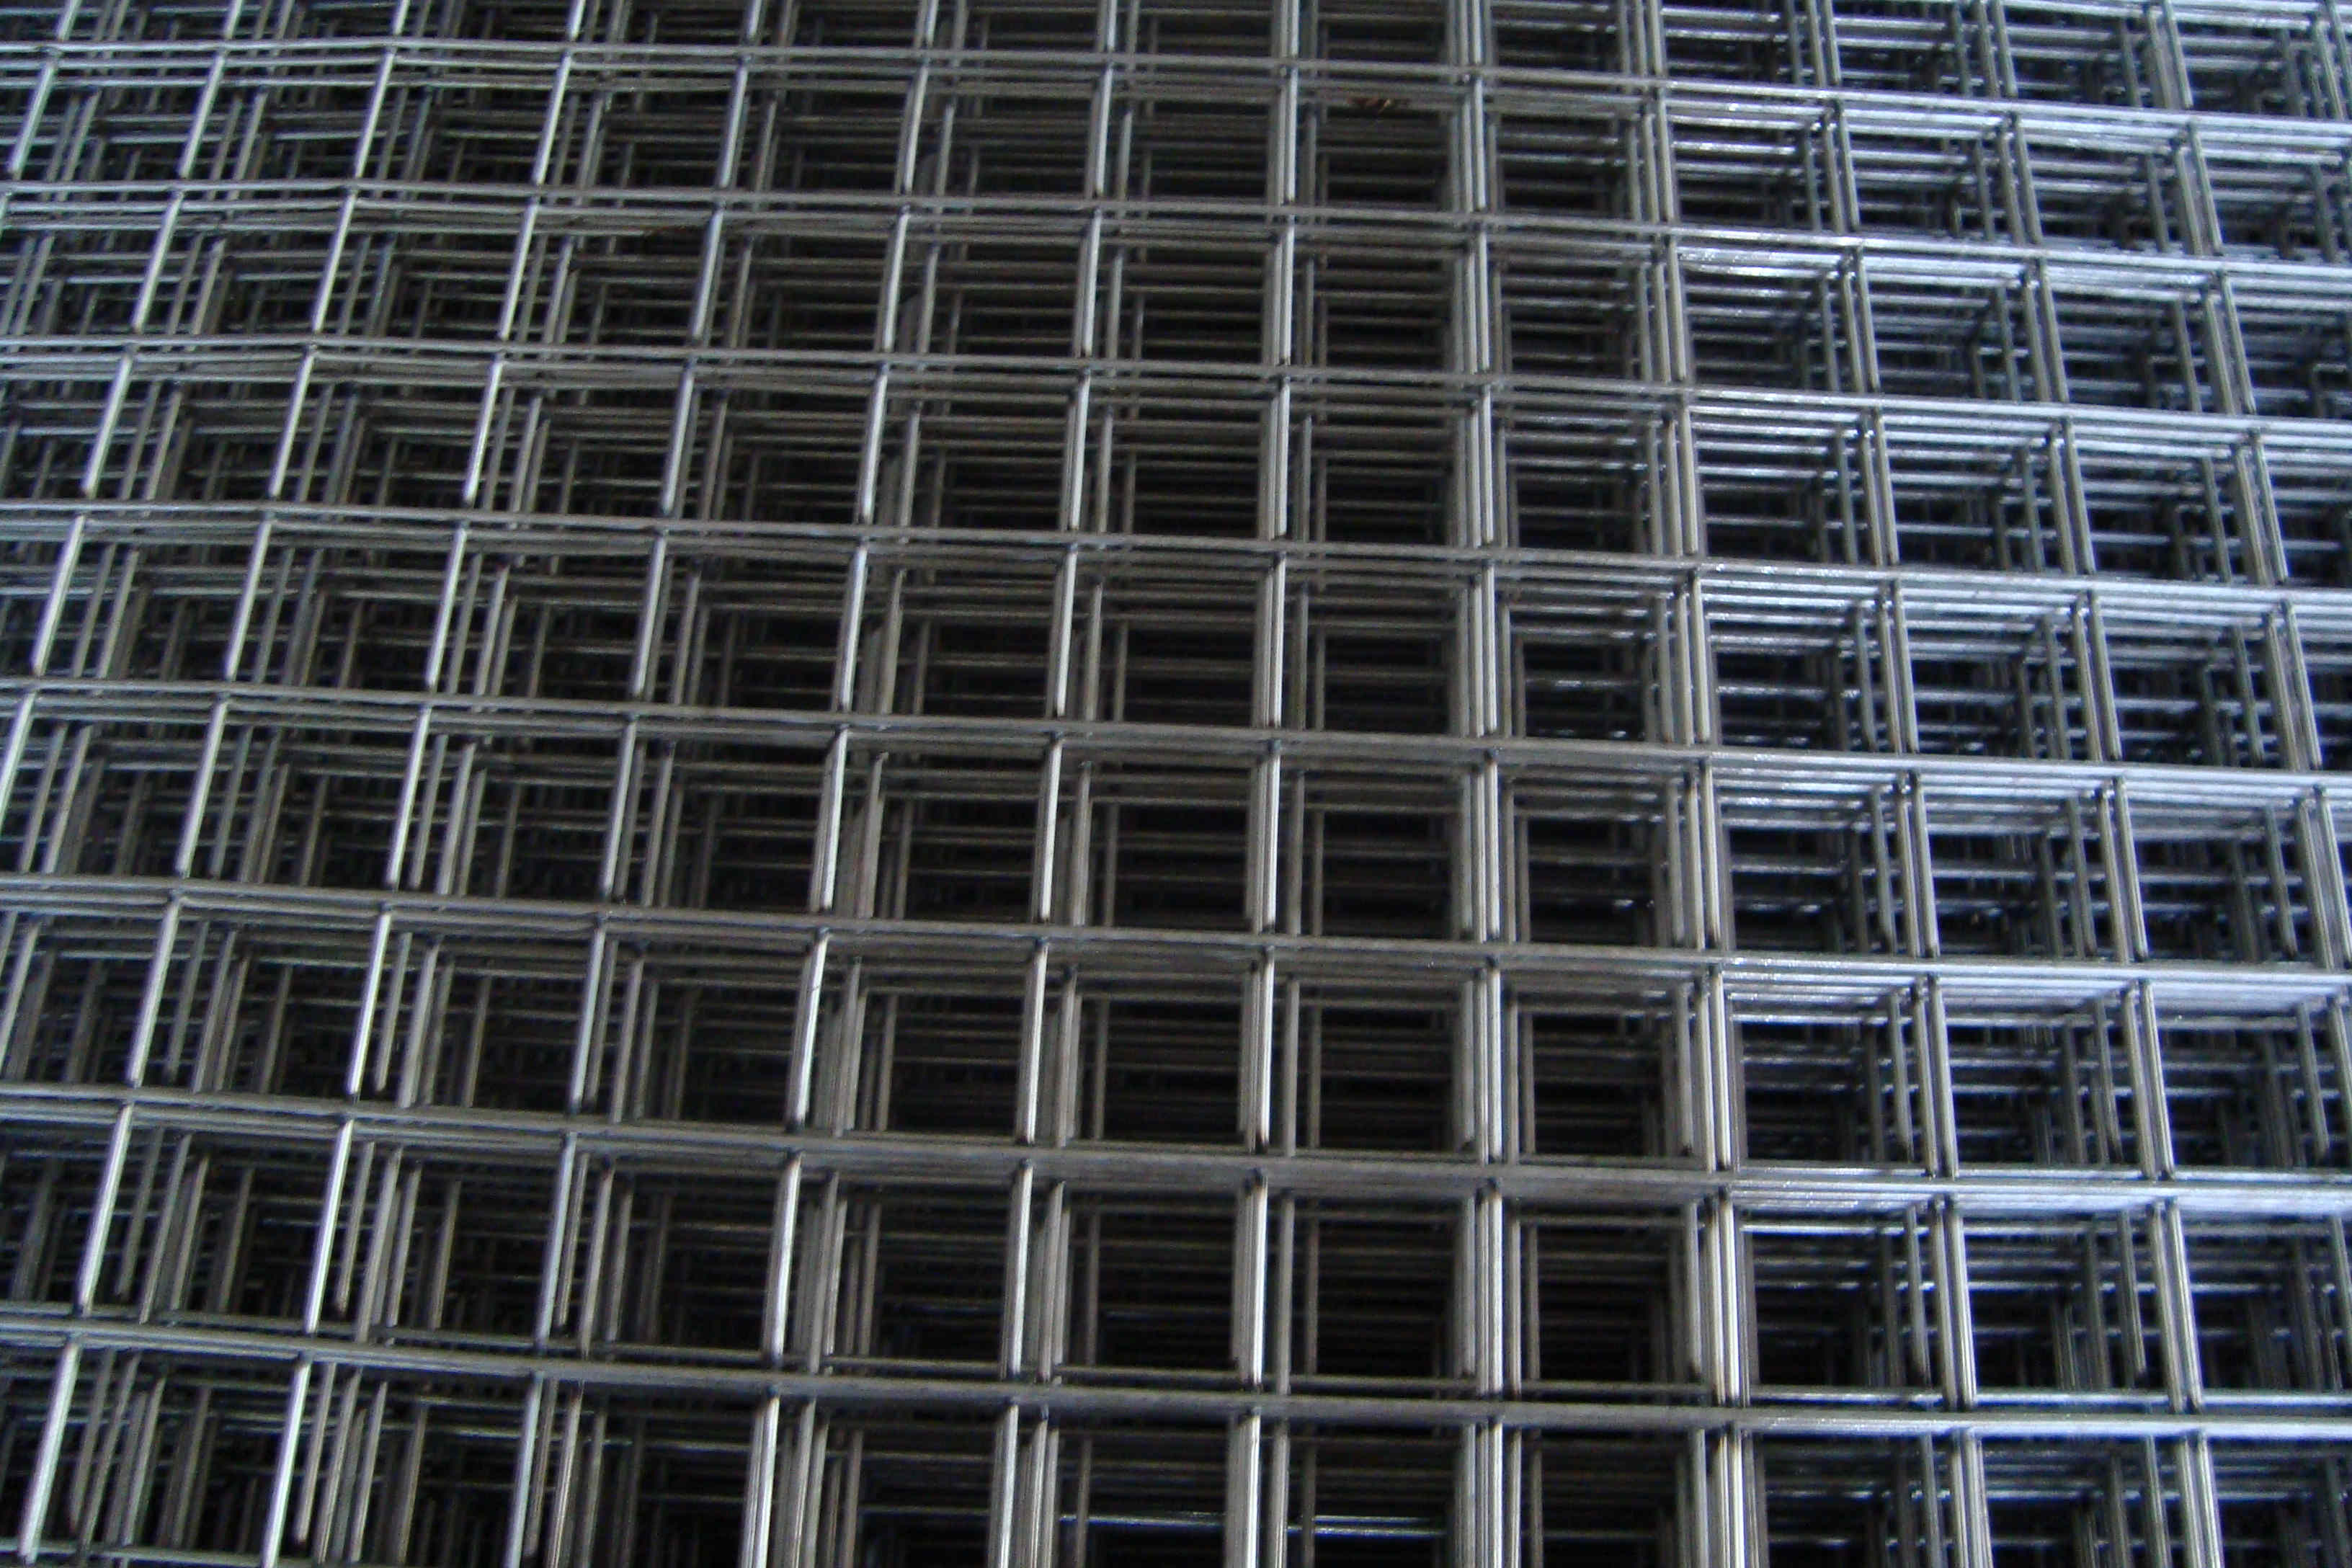 Rebco Fence Links Reb Mech Residential Wiring In Europe Welded Mesh Is Produced By Zinc Coated Gi Wire And Followed Electrical Resistance Welding The Galvanized Coating Of Dimensions